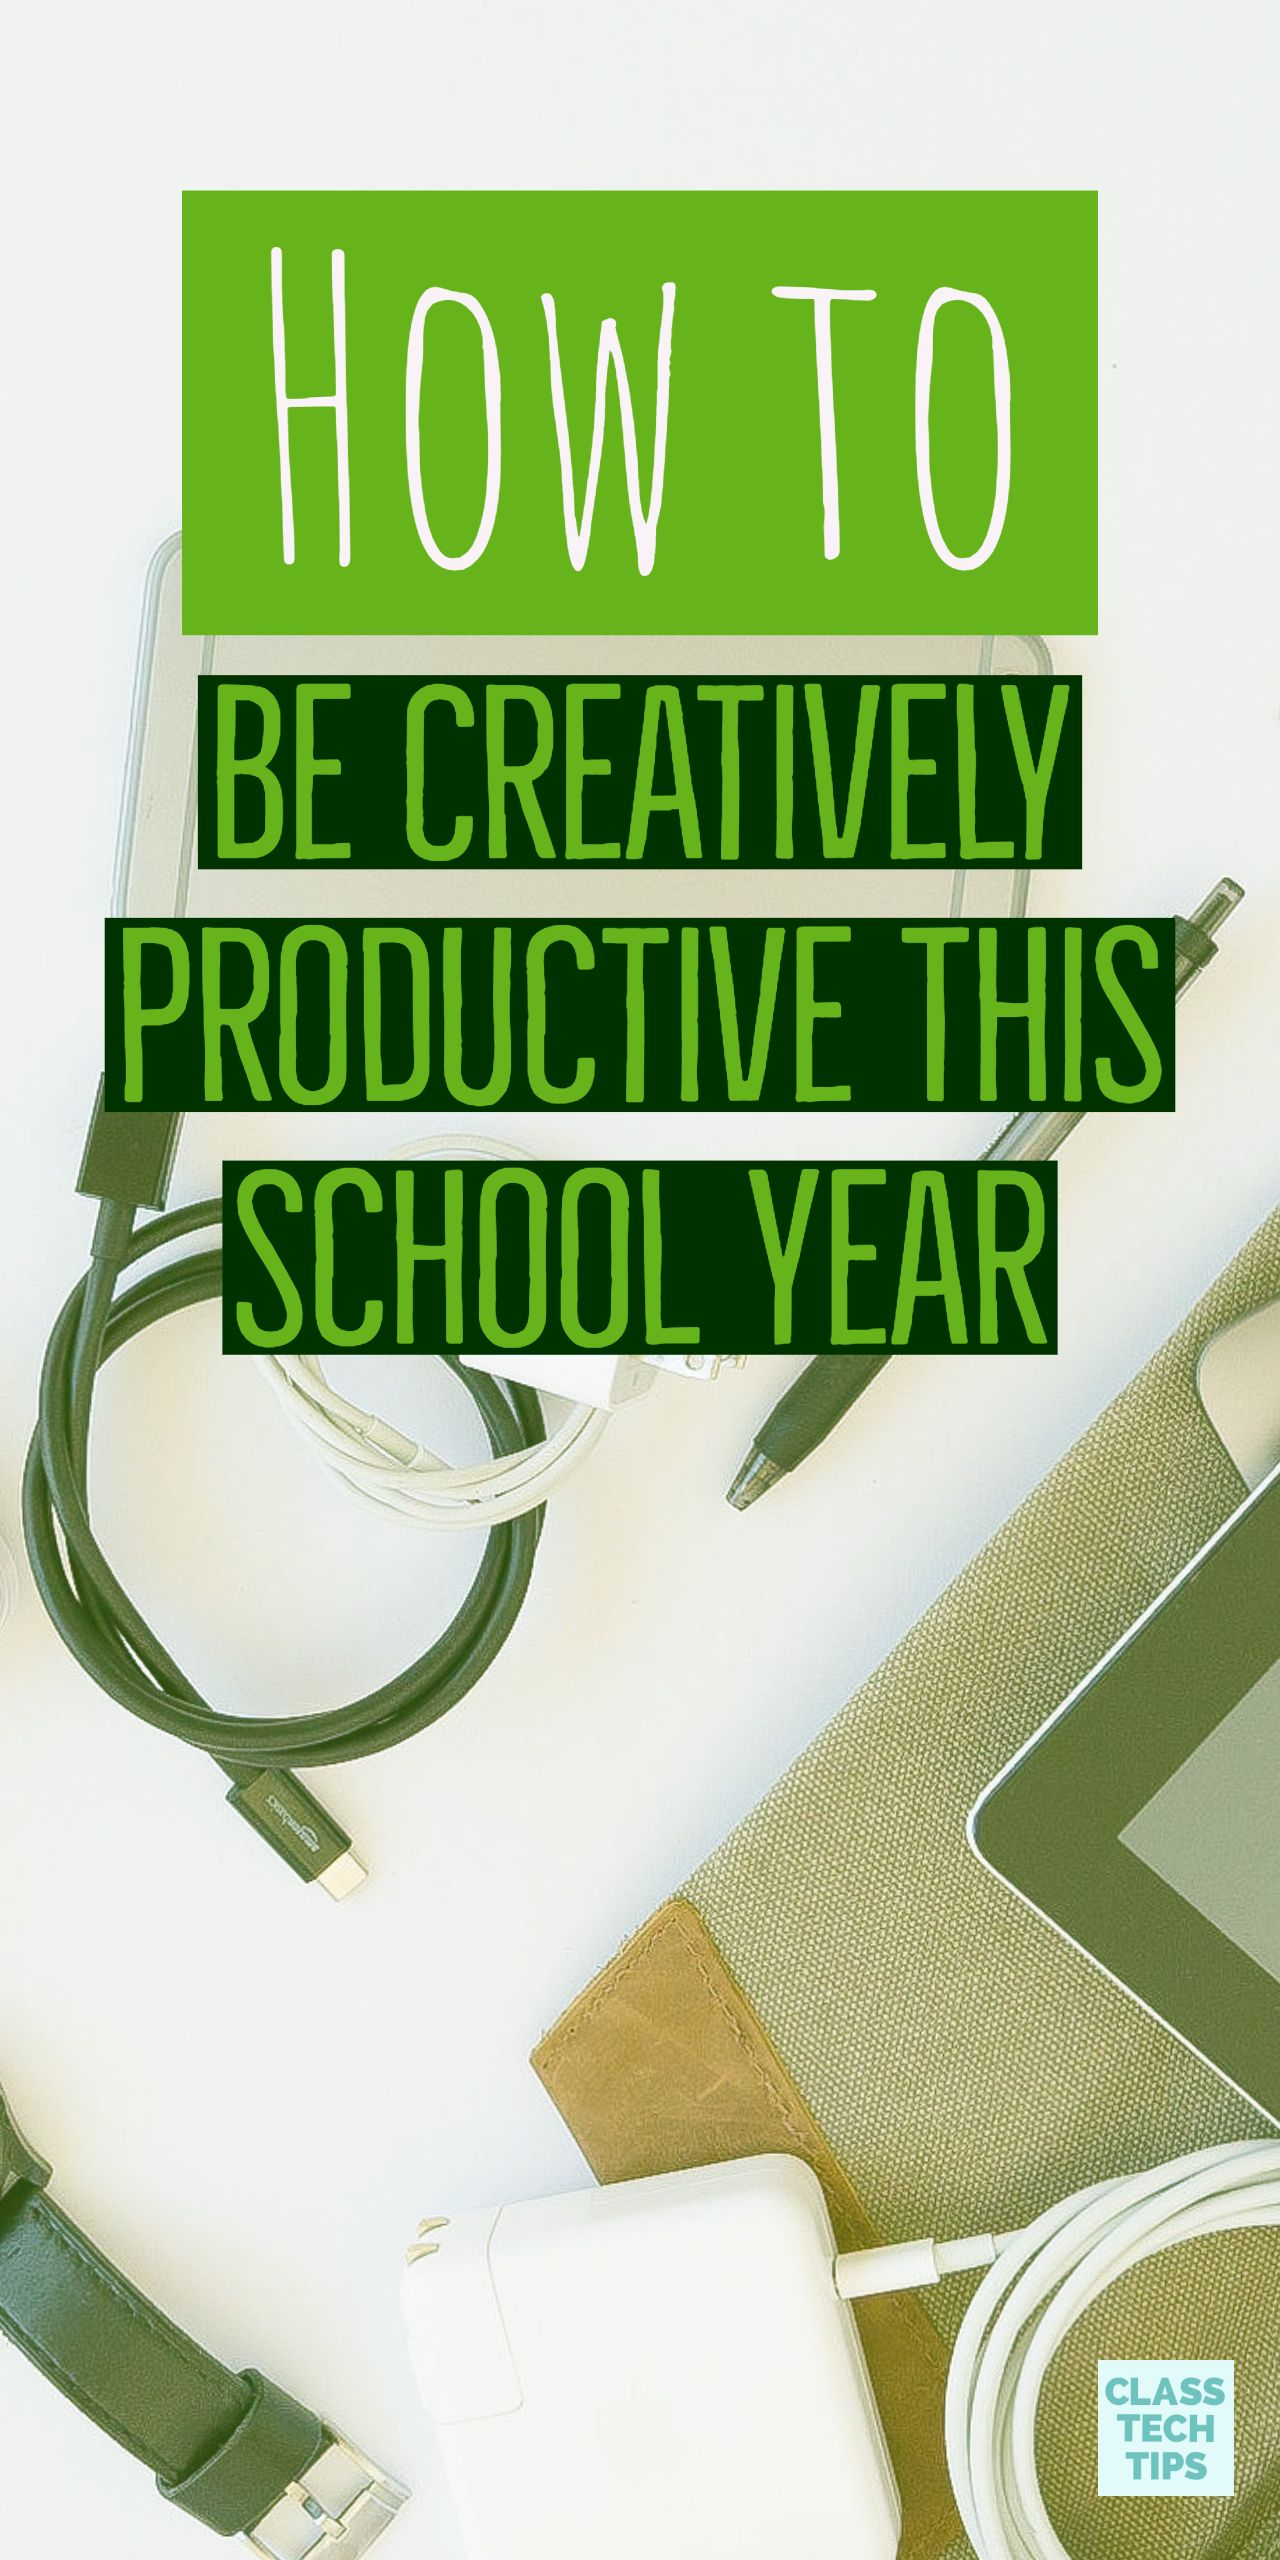 How To Be Creatively Productive This School Year With